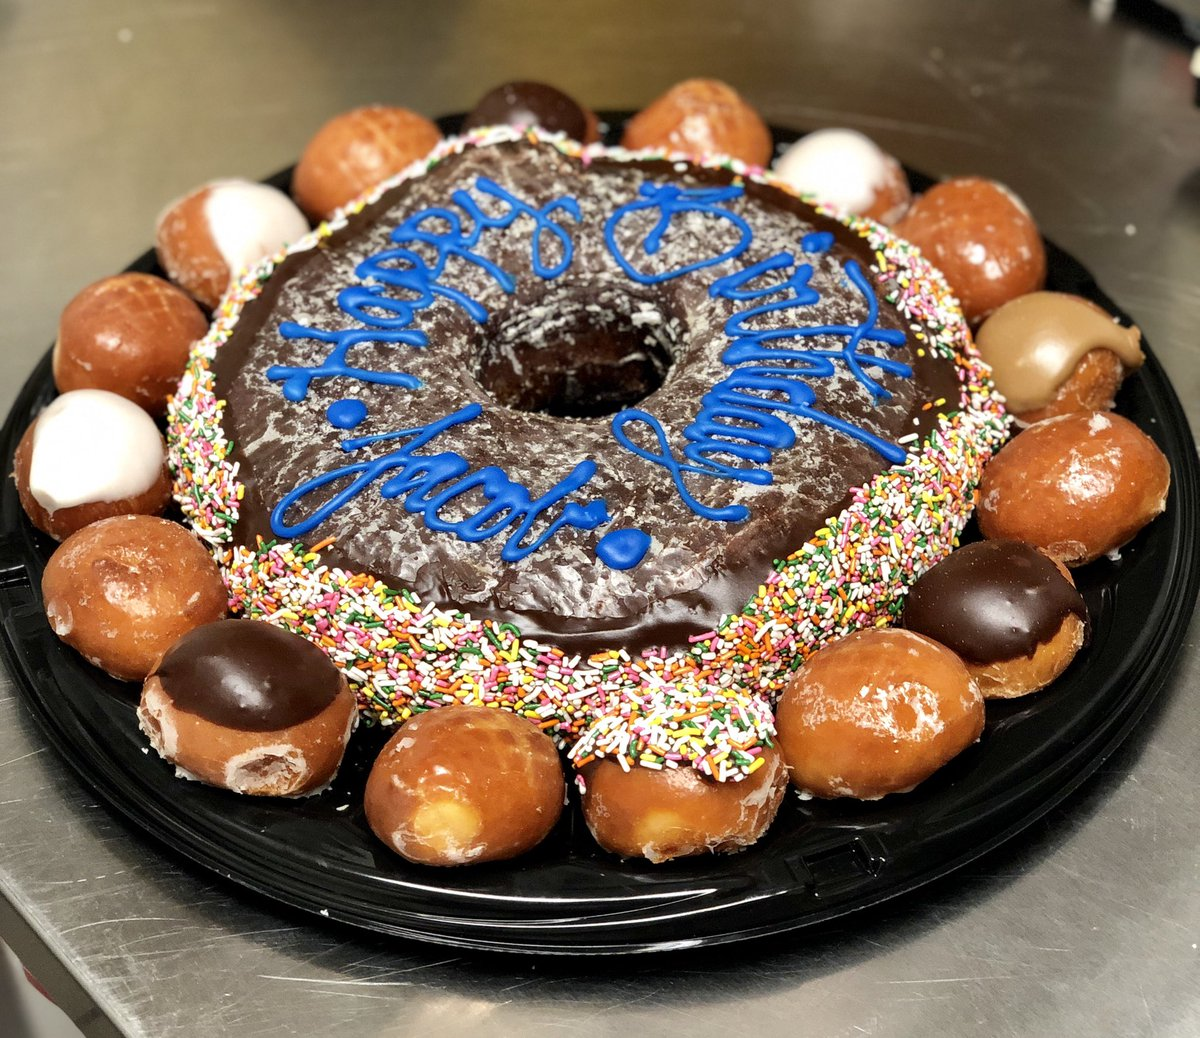 Randys Donuts On Twitter Our GIANT Birthday Cake Donut Is Perfect